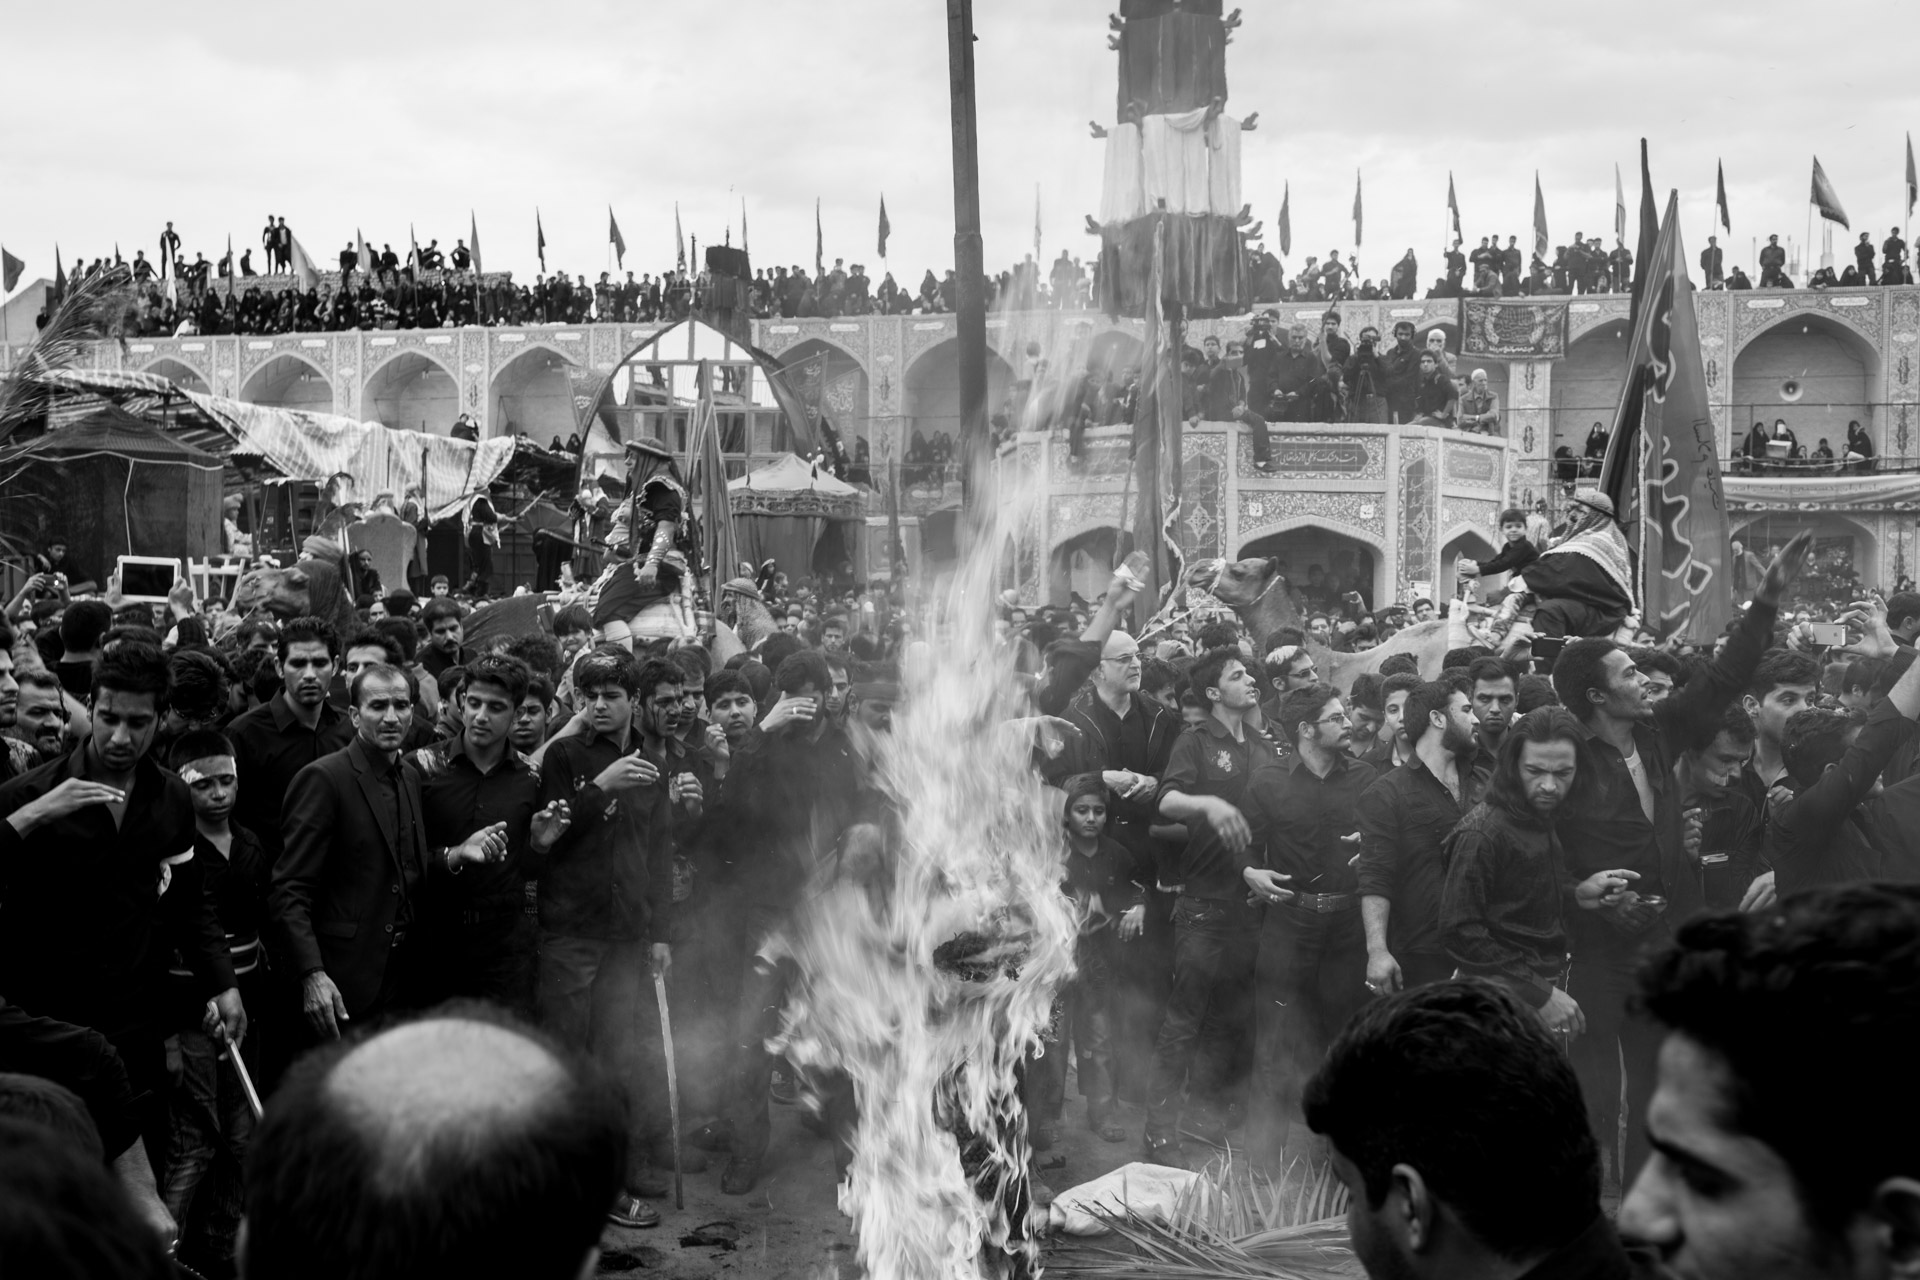 The re-enactment of the battle ends with the burning of the symbolic tent of Imam Hussain. After the tent is burned down, people try to collect small remains from it for good luck.